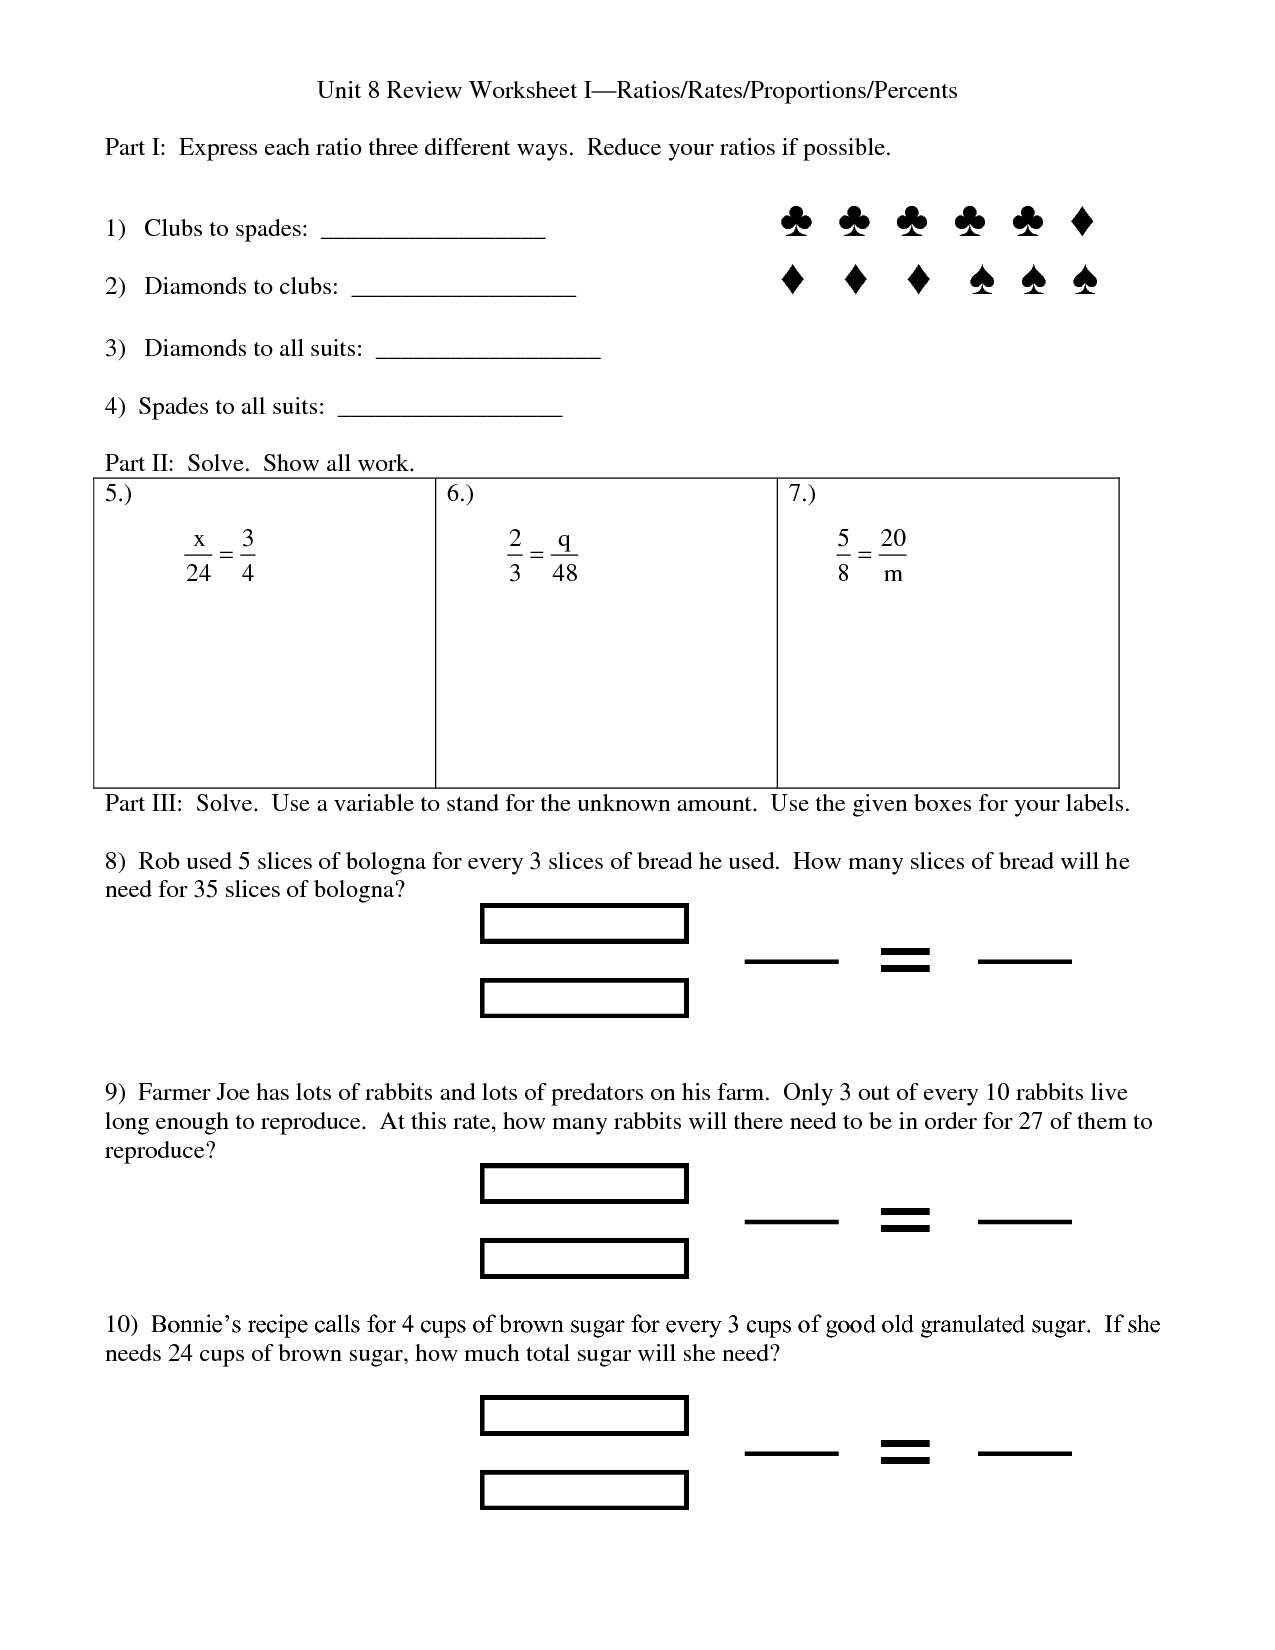 Unit Rate Christmas Worksheet